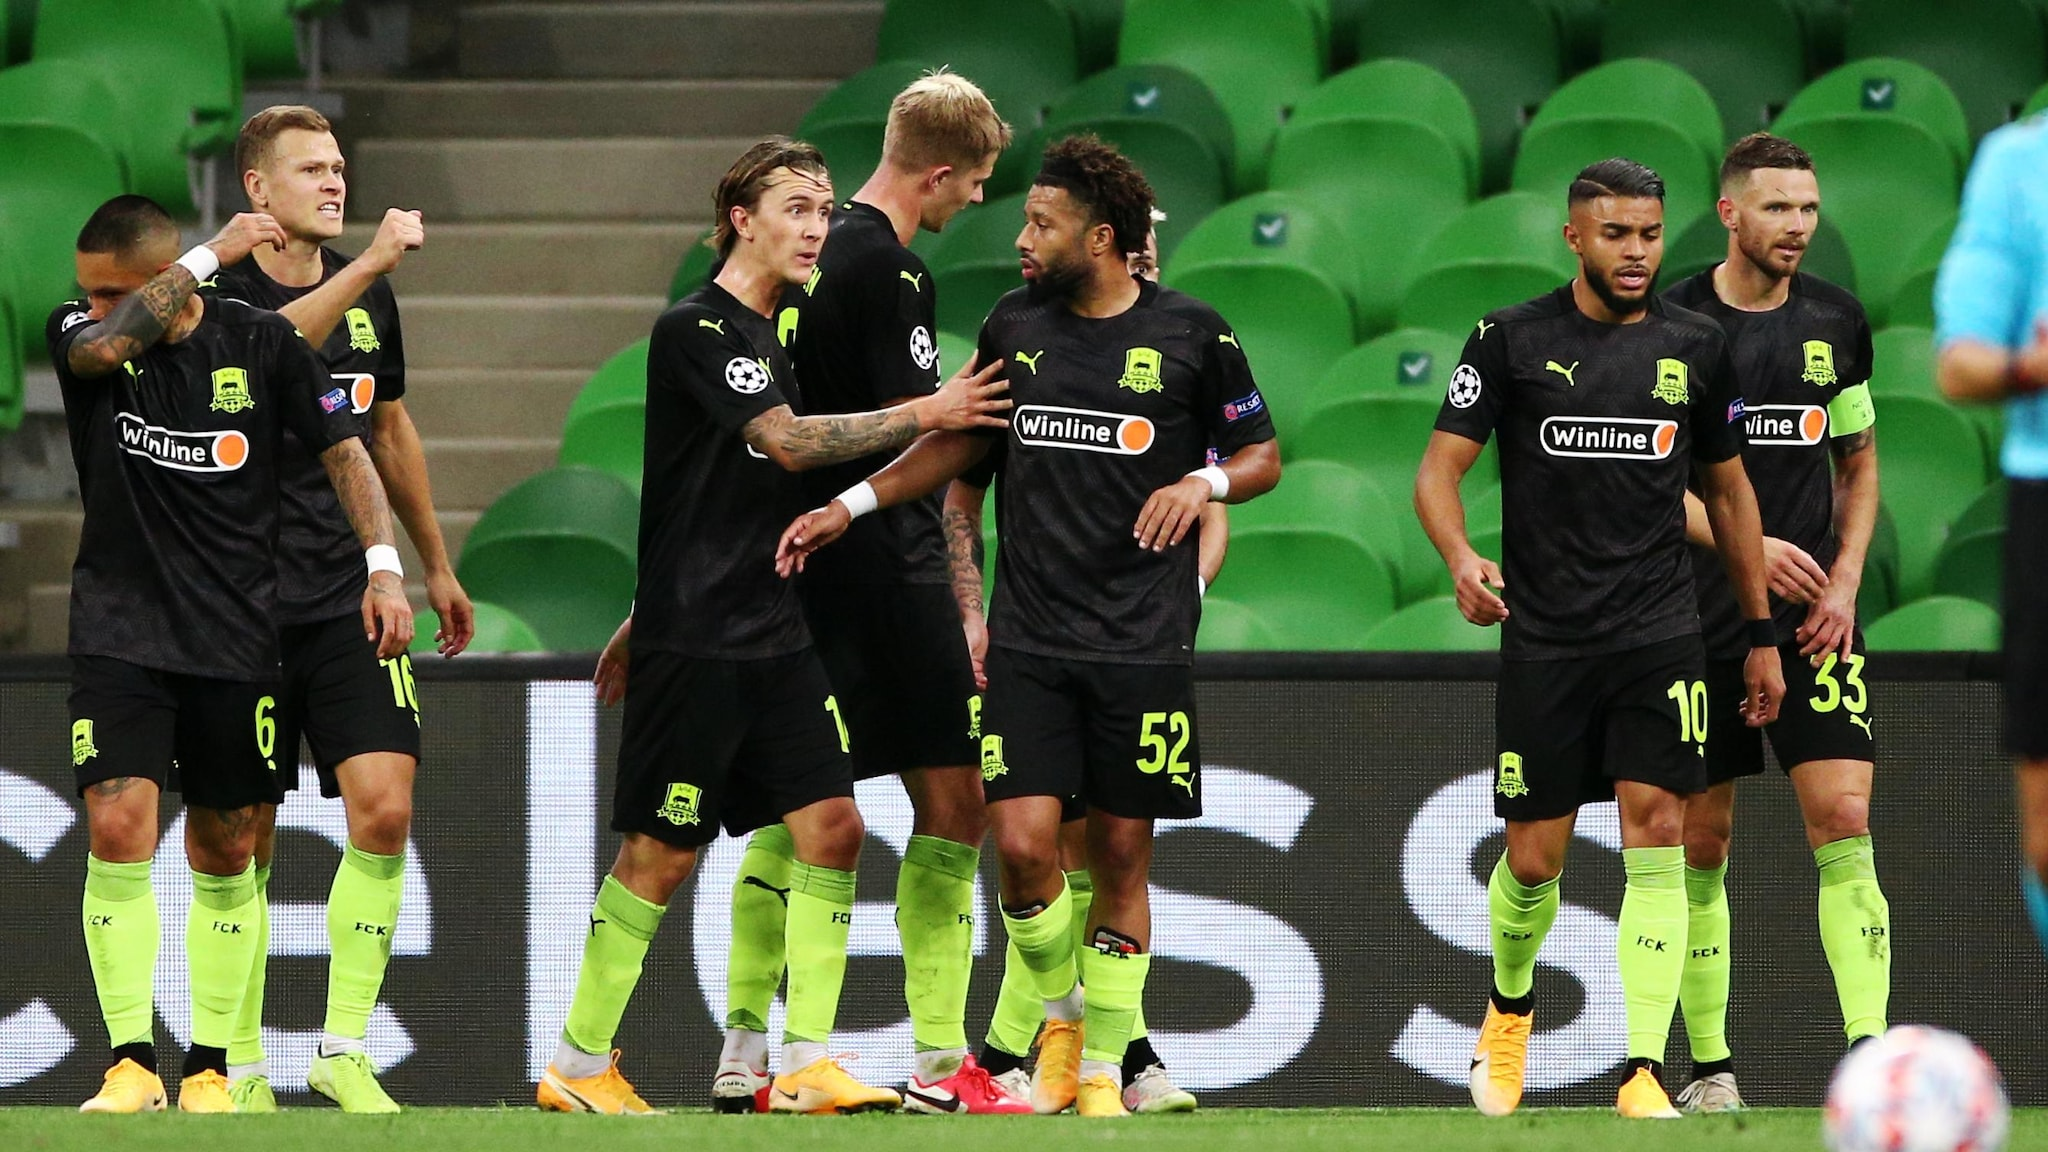 Krasnodar Paok Krasnodar 2 1 Paok Cabella Edges Hosts In Front Uefa Champions League Uefa Com